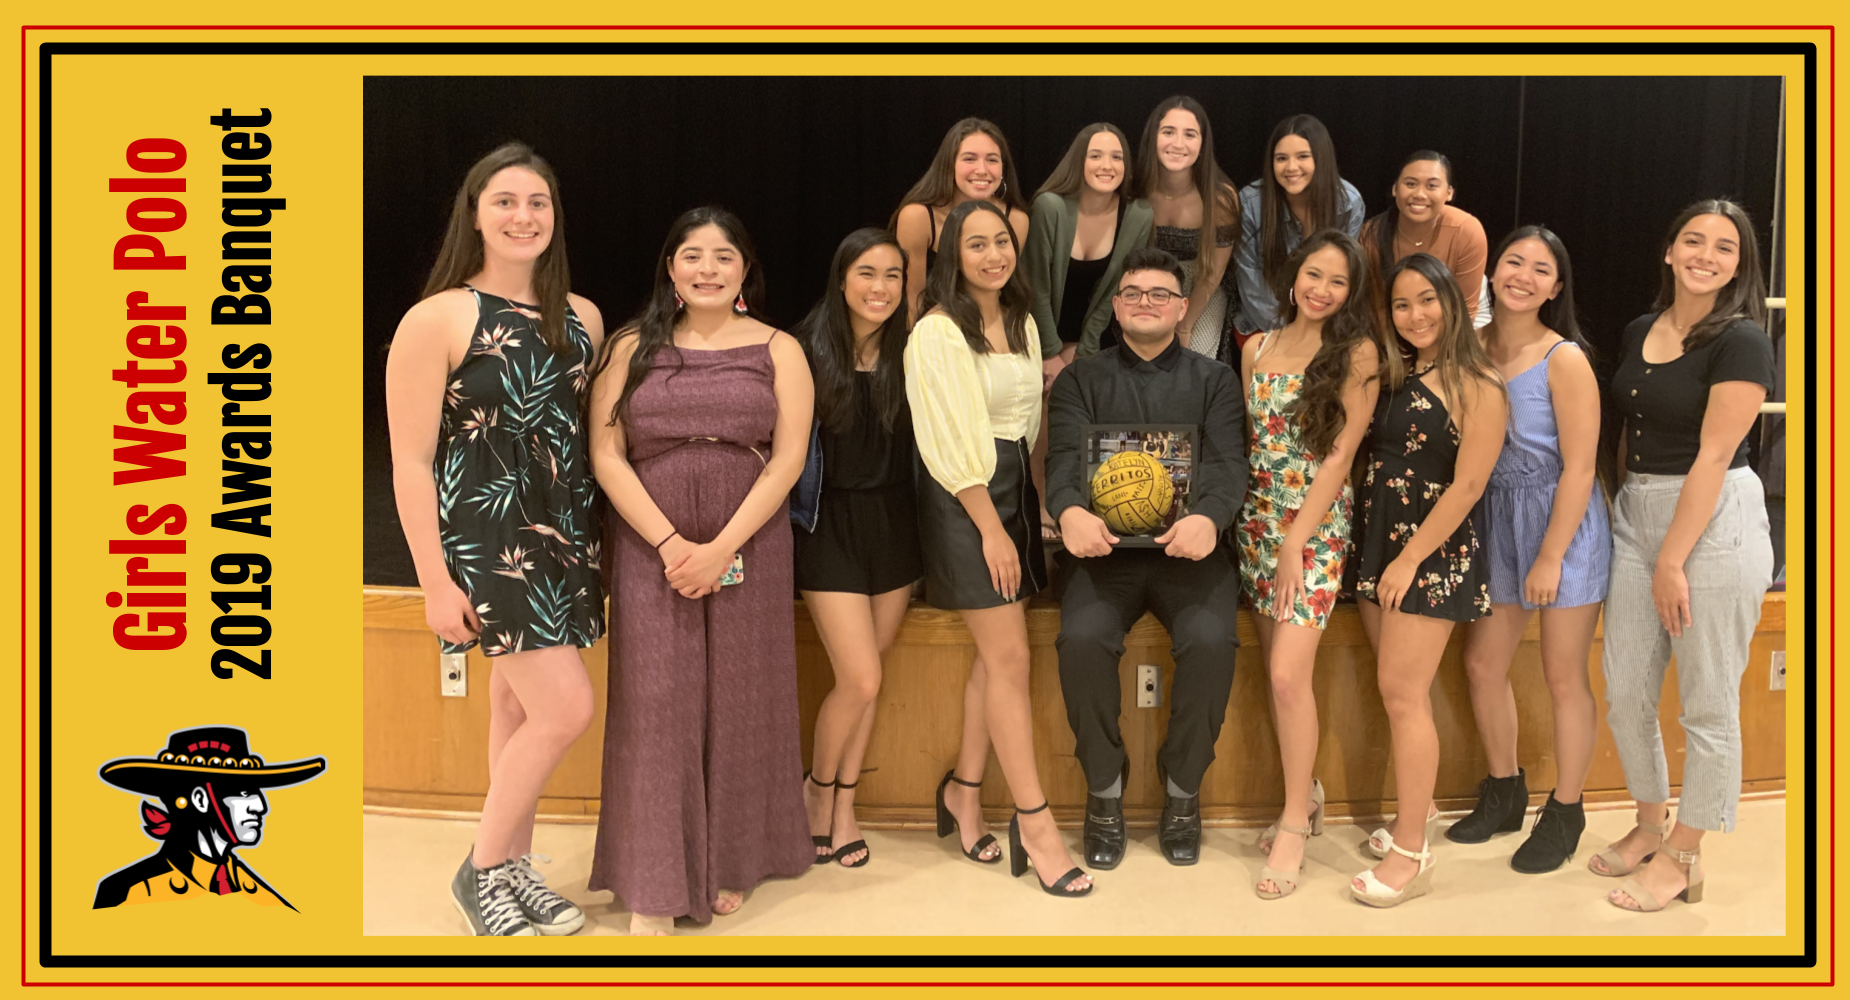 Water Polo Awards Banquet